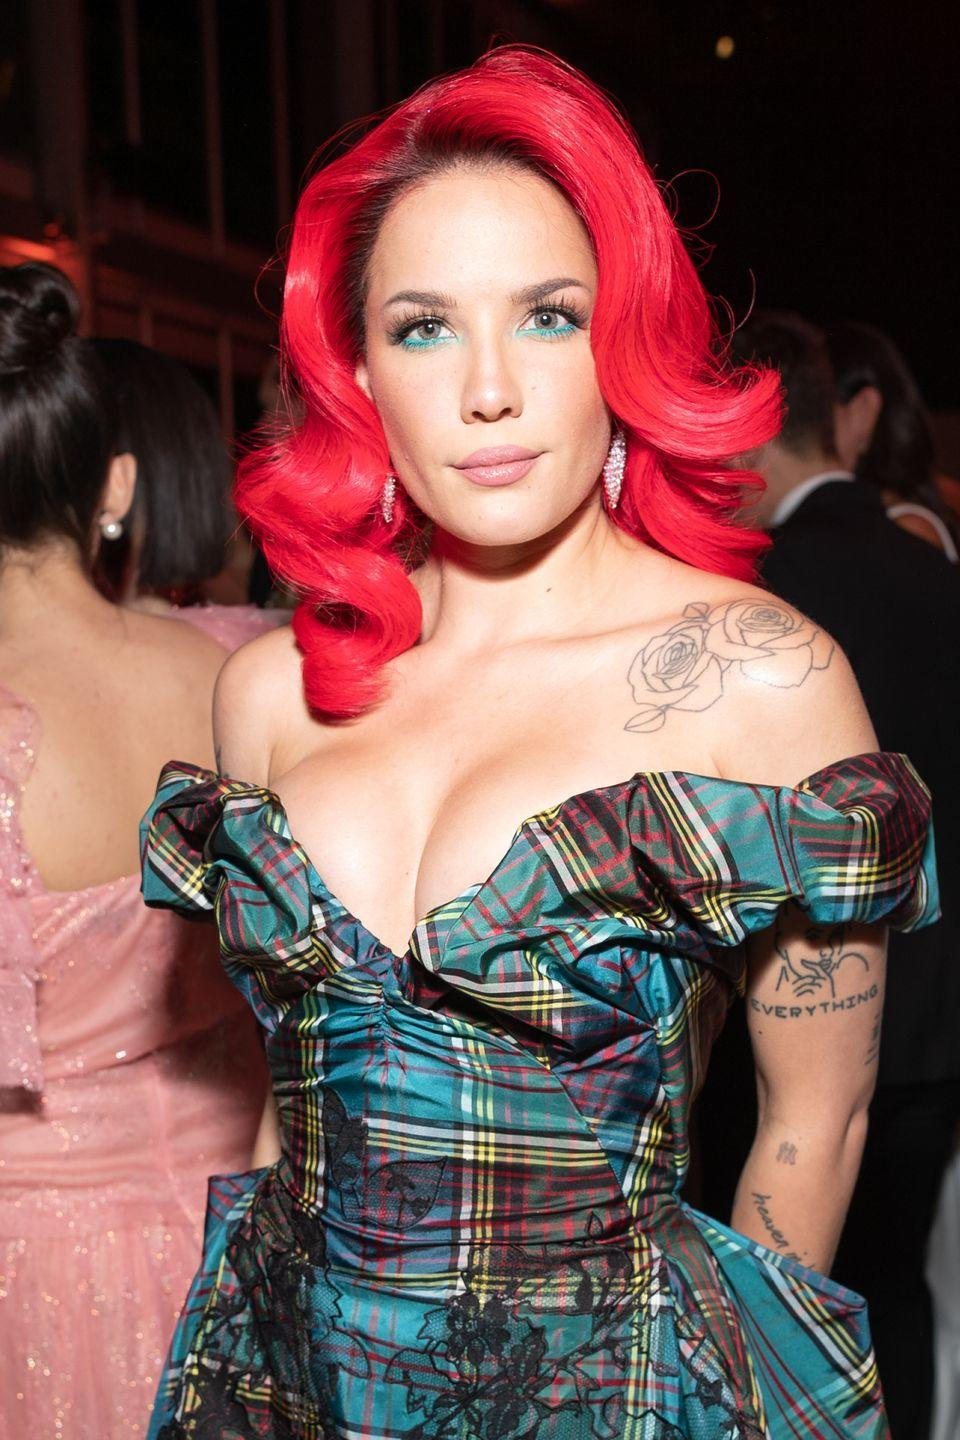 """<p>Halsey has been pretty open about her bisexuality since before she became a breakout star on the music scene. She continues to fight for bisexual representation in music and even released several songs about being bisexual in her albums, <a href=""""https://www.youtube.com/watch?v=RVd_71ZdRd4"""" rel=""""nofollow noopener"""" target=""""_blank"""" data-ylk=""""slk:including a duet with Lauren Jauregui called &quot;Strangers.&quot;"""" class=""""link rapid-noclick-resp"""">including a duet with Lauren Jauregui called """"Strangers."""" </a></p>"""